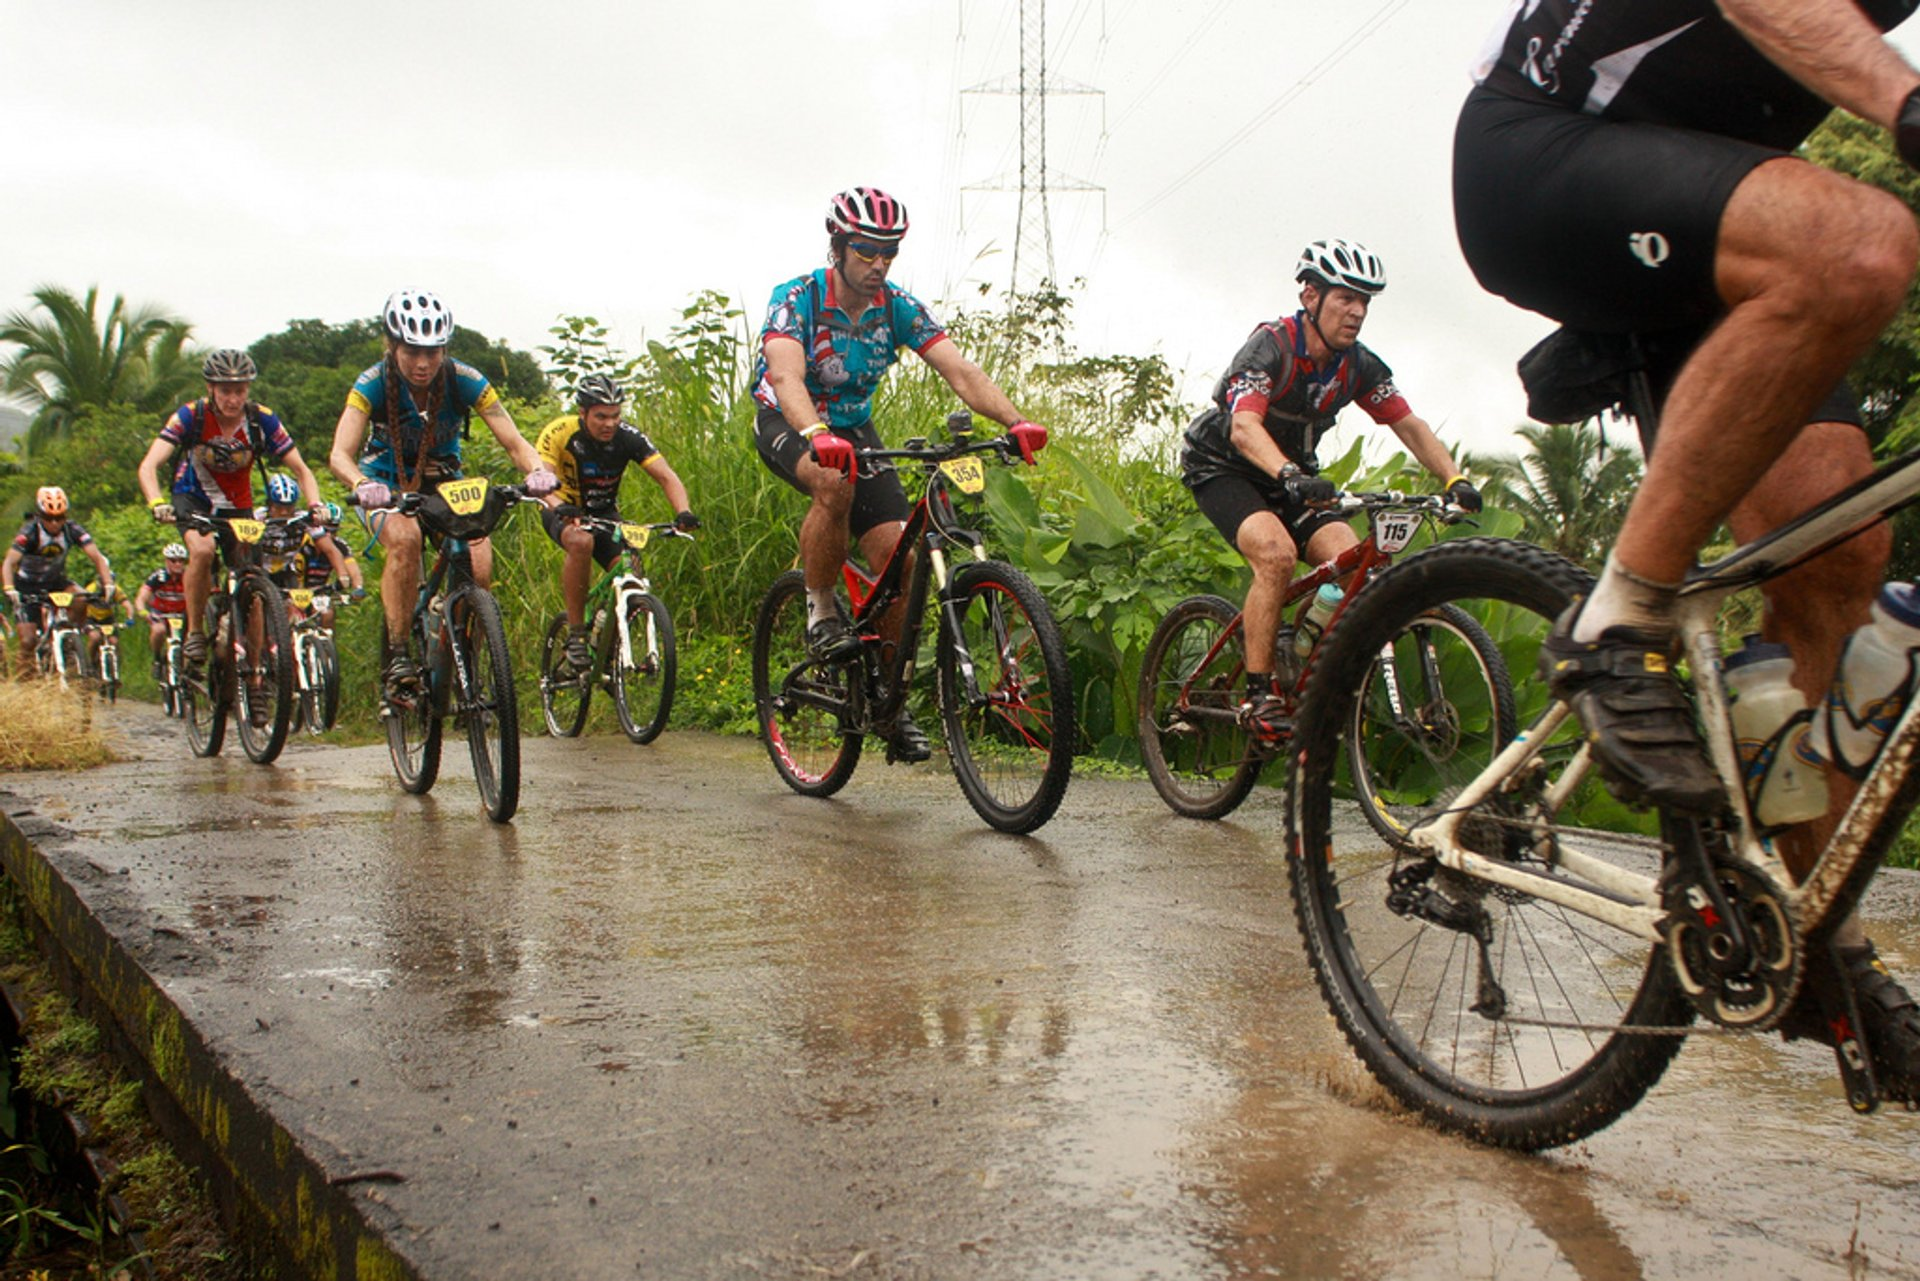 Calendario Mtb 2019 Costa Rica.La Ruta De Los Conquistadores 2019 In Costa Rica Dates Map